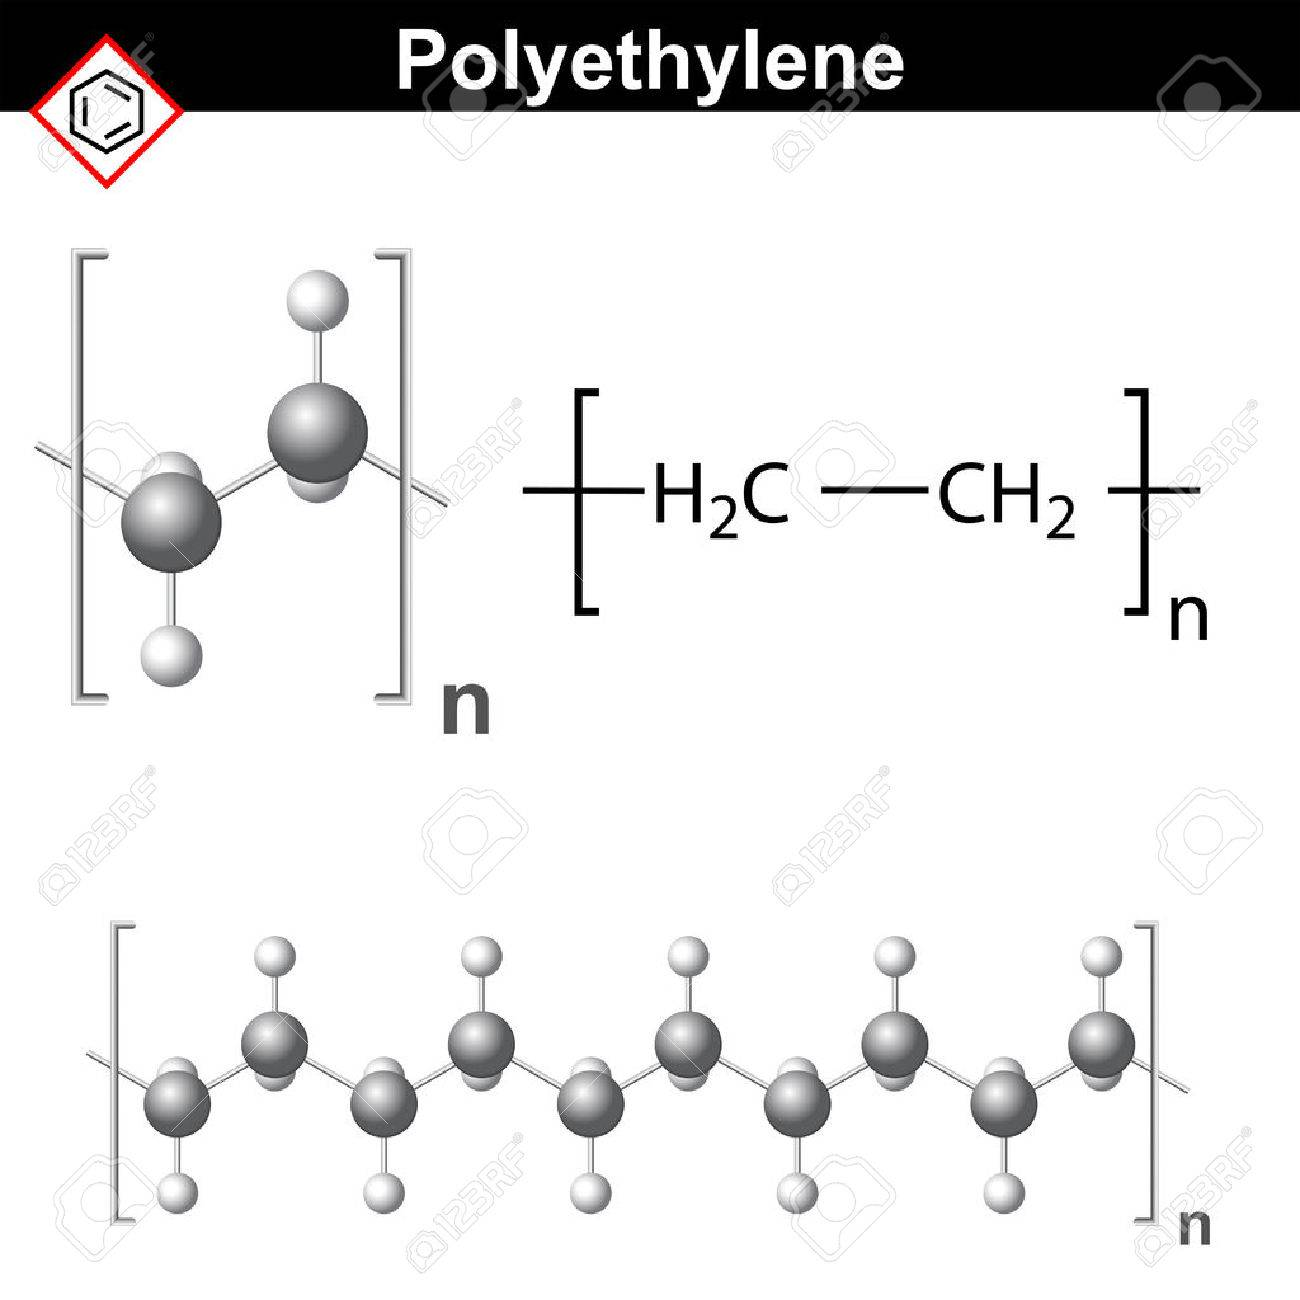 hight resolution of structural chemical formula and model of polyethylene molecule stock vector 45466631